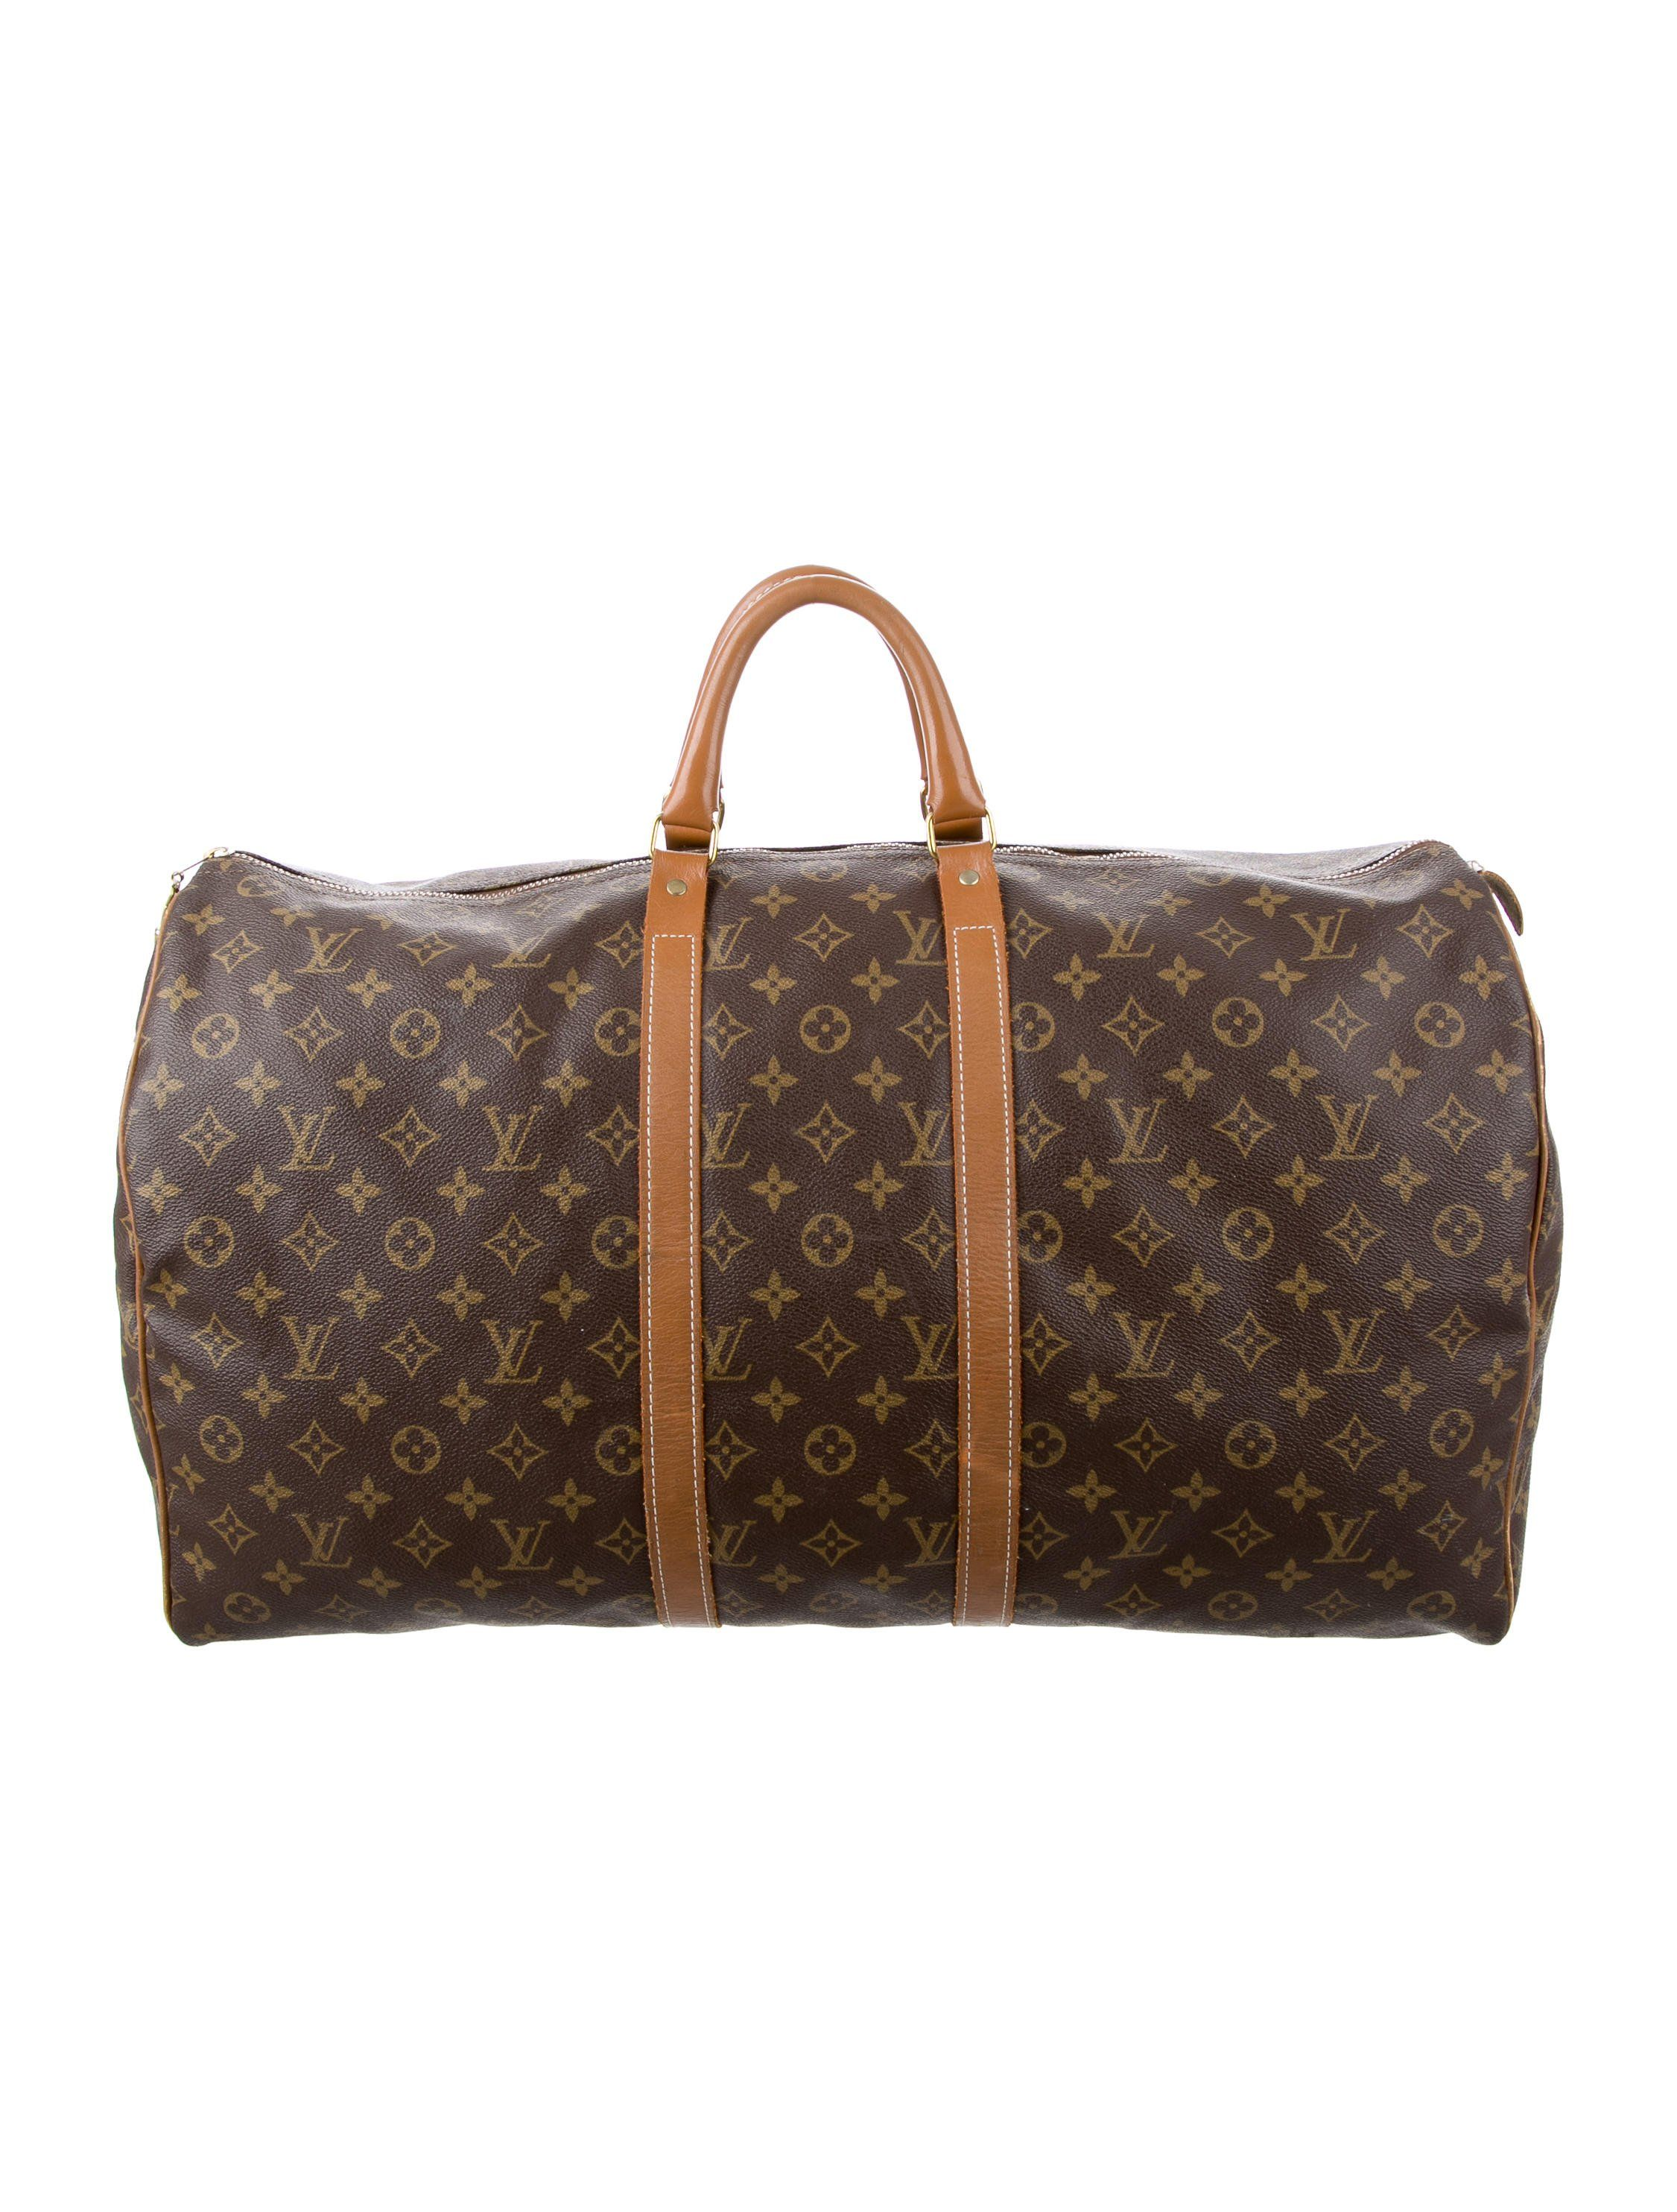 Vintage French Company Keepall 55   Estate Traders Louis Vuitton ... fc33cd61fe